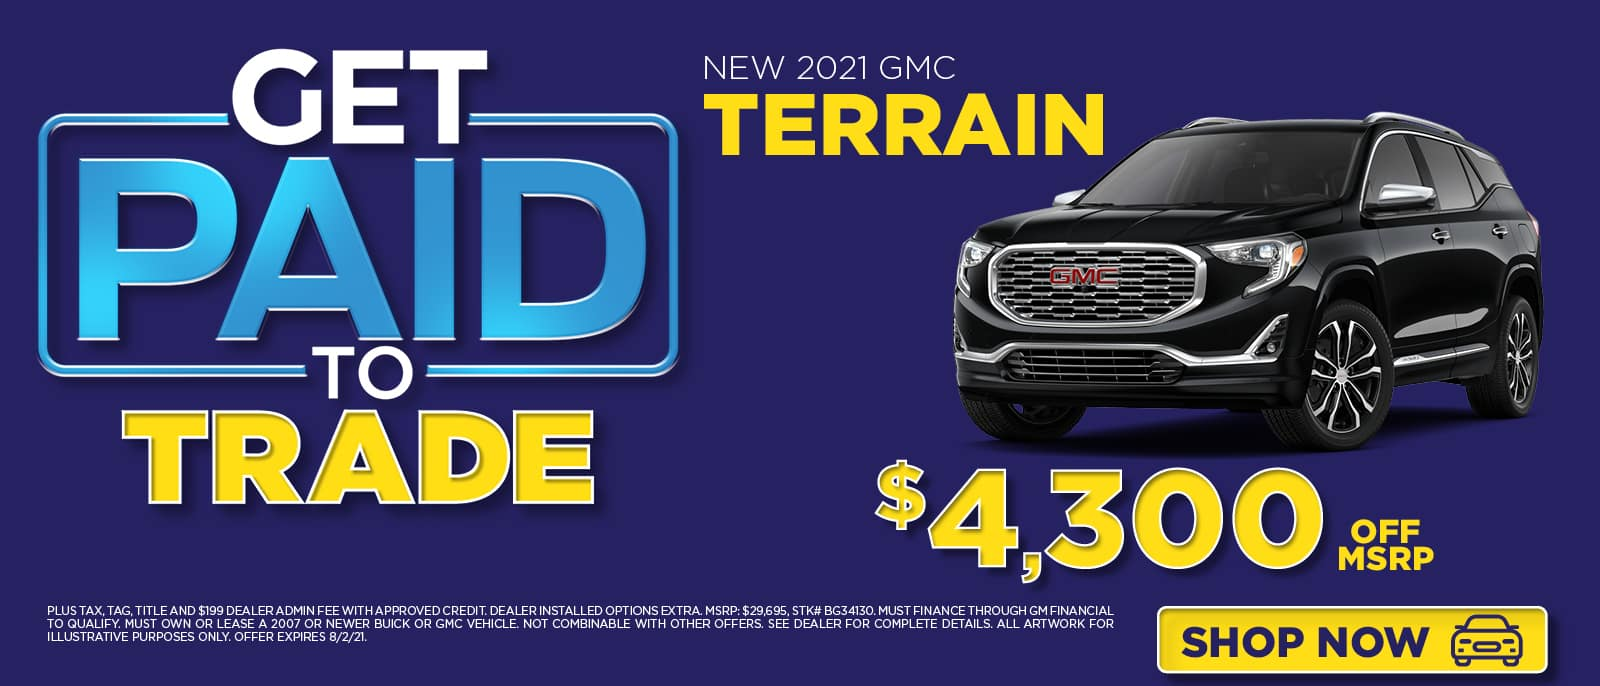 Get Paid to Trade - Terrain